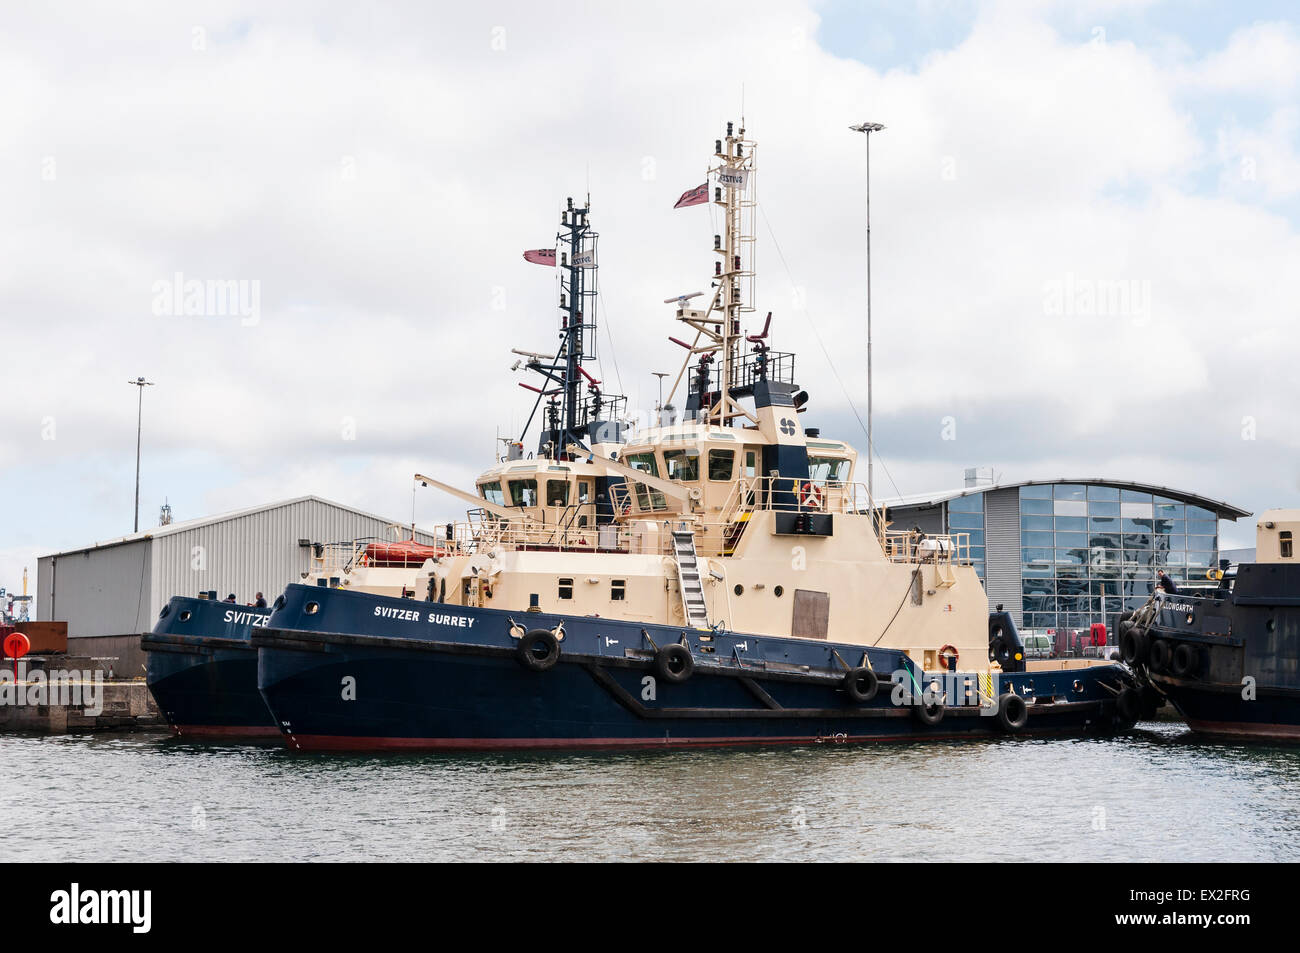 Belfast harbour tug boats, the Svitzer Surrey, and Svitzer Sussex - Stock Image